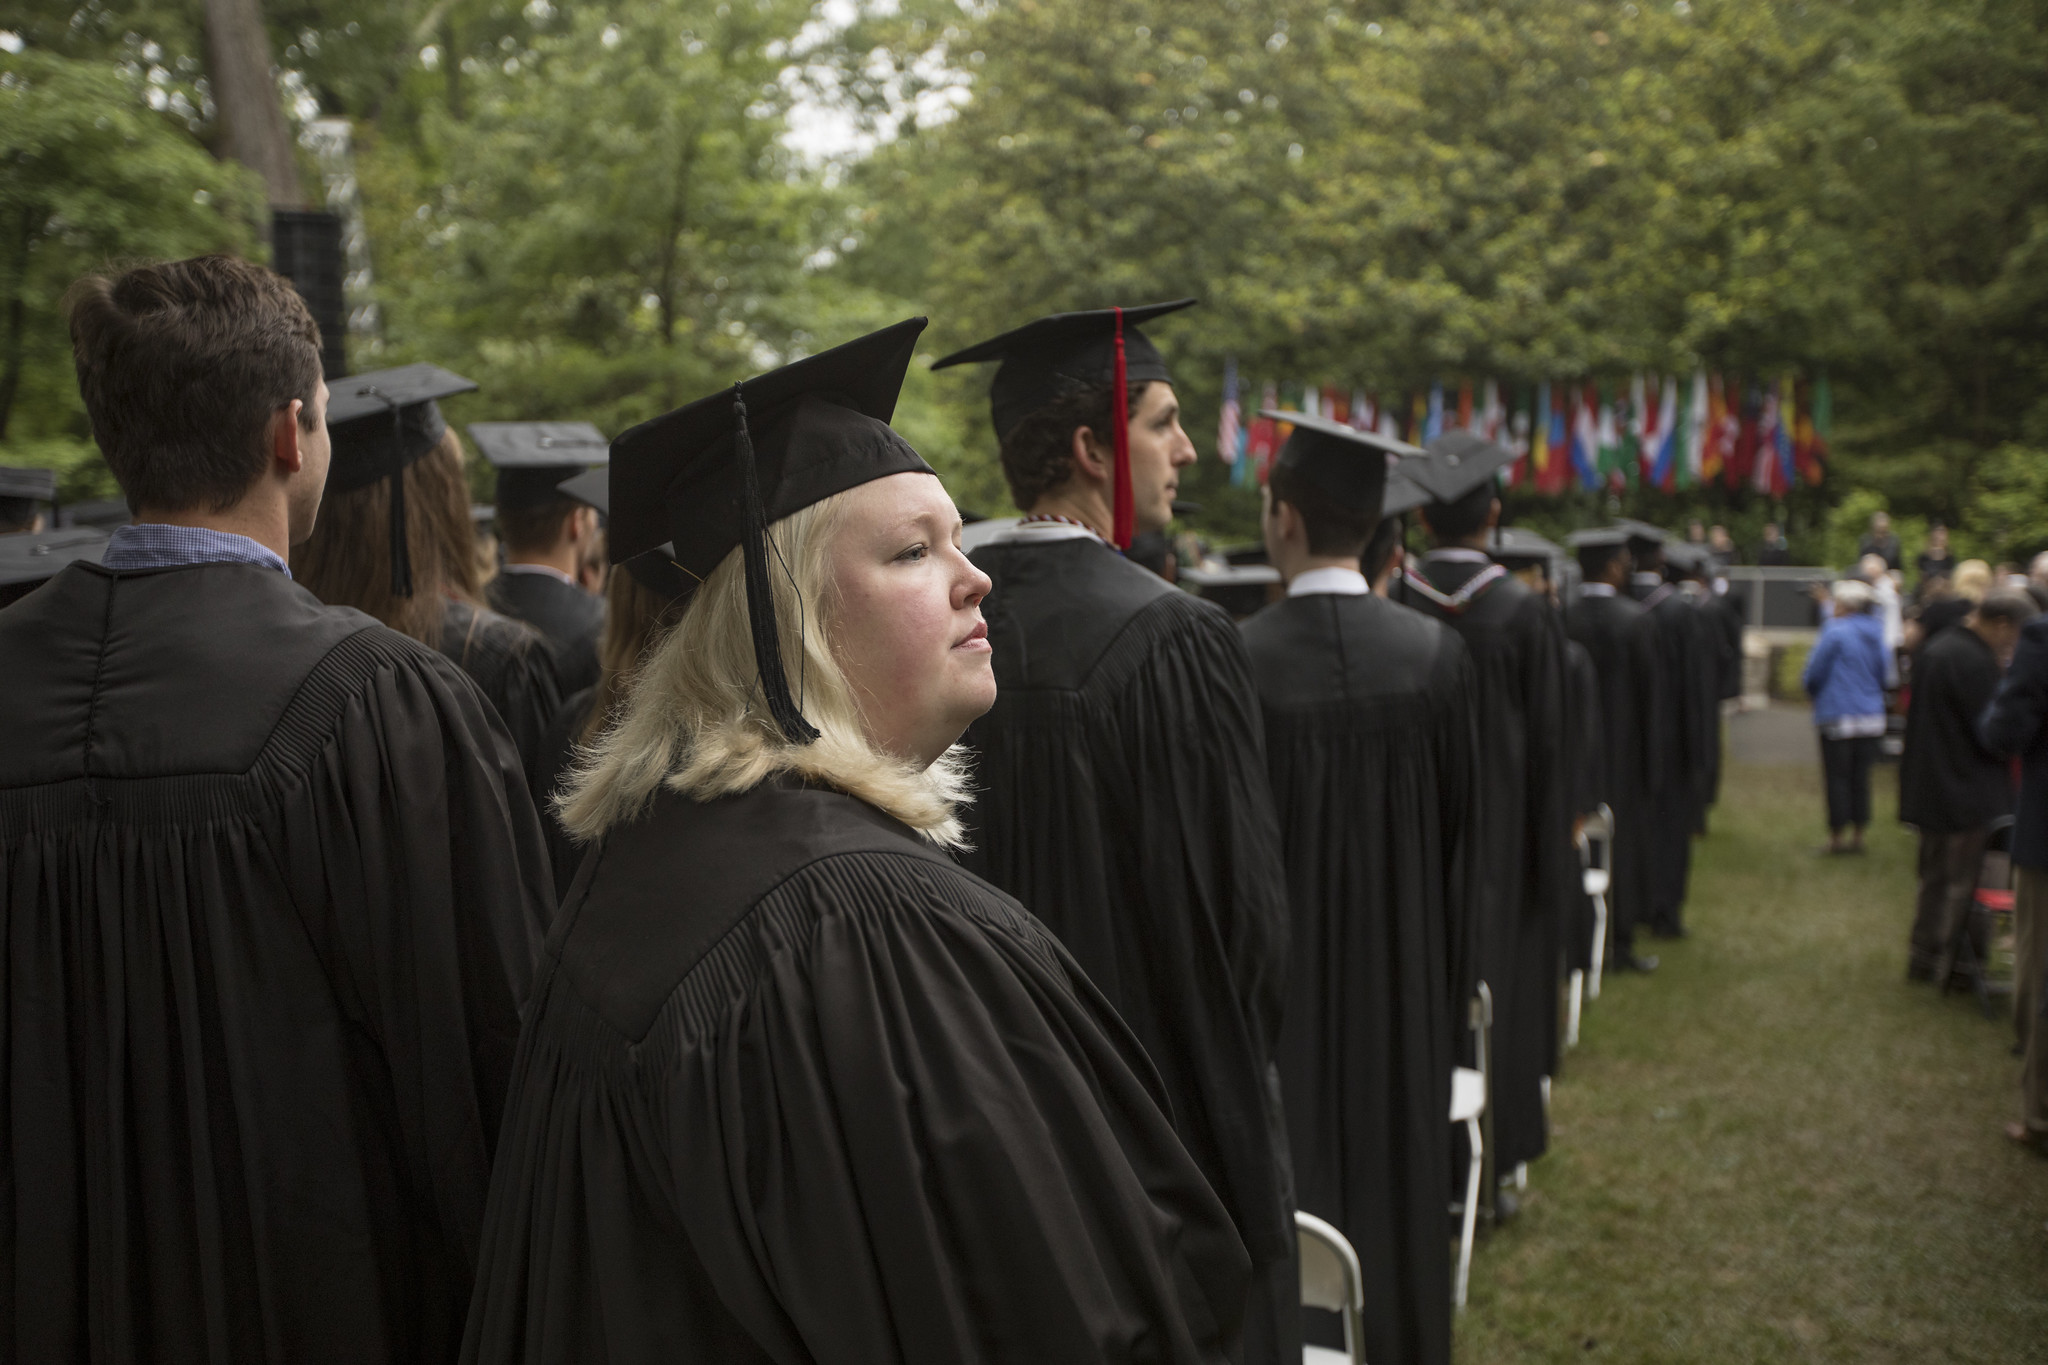 During Commencement 2019